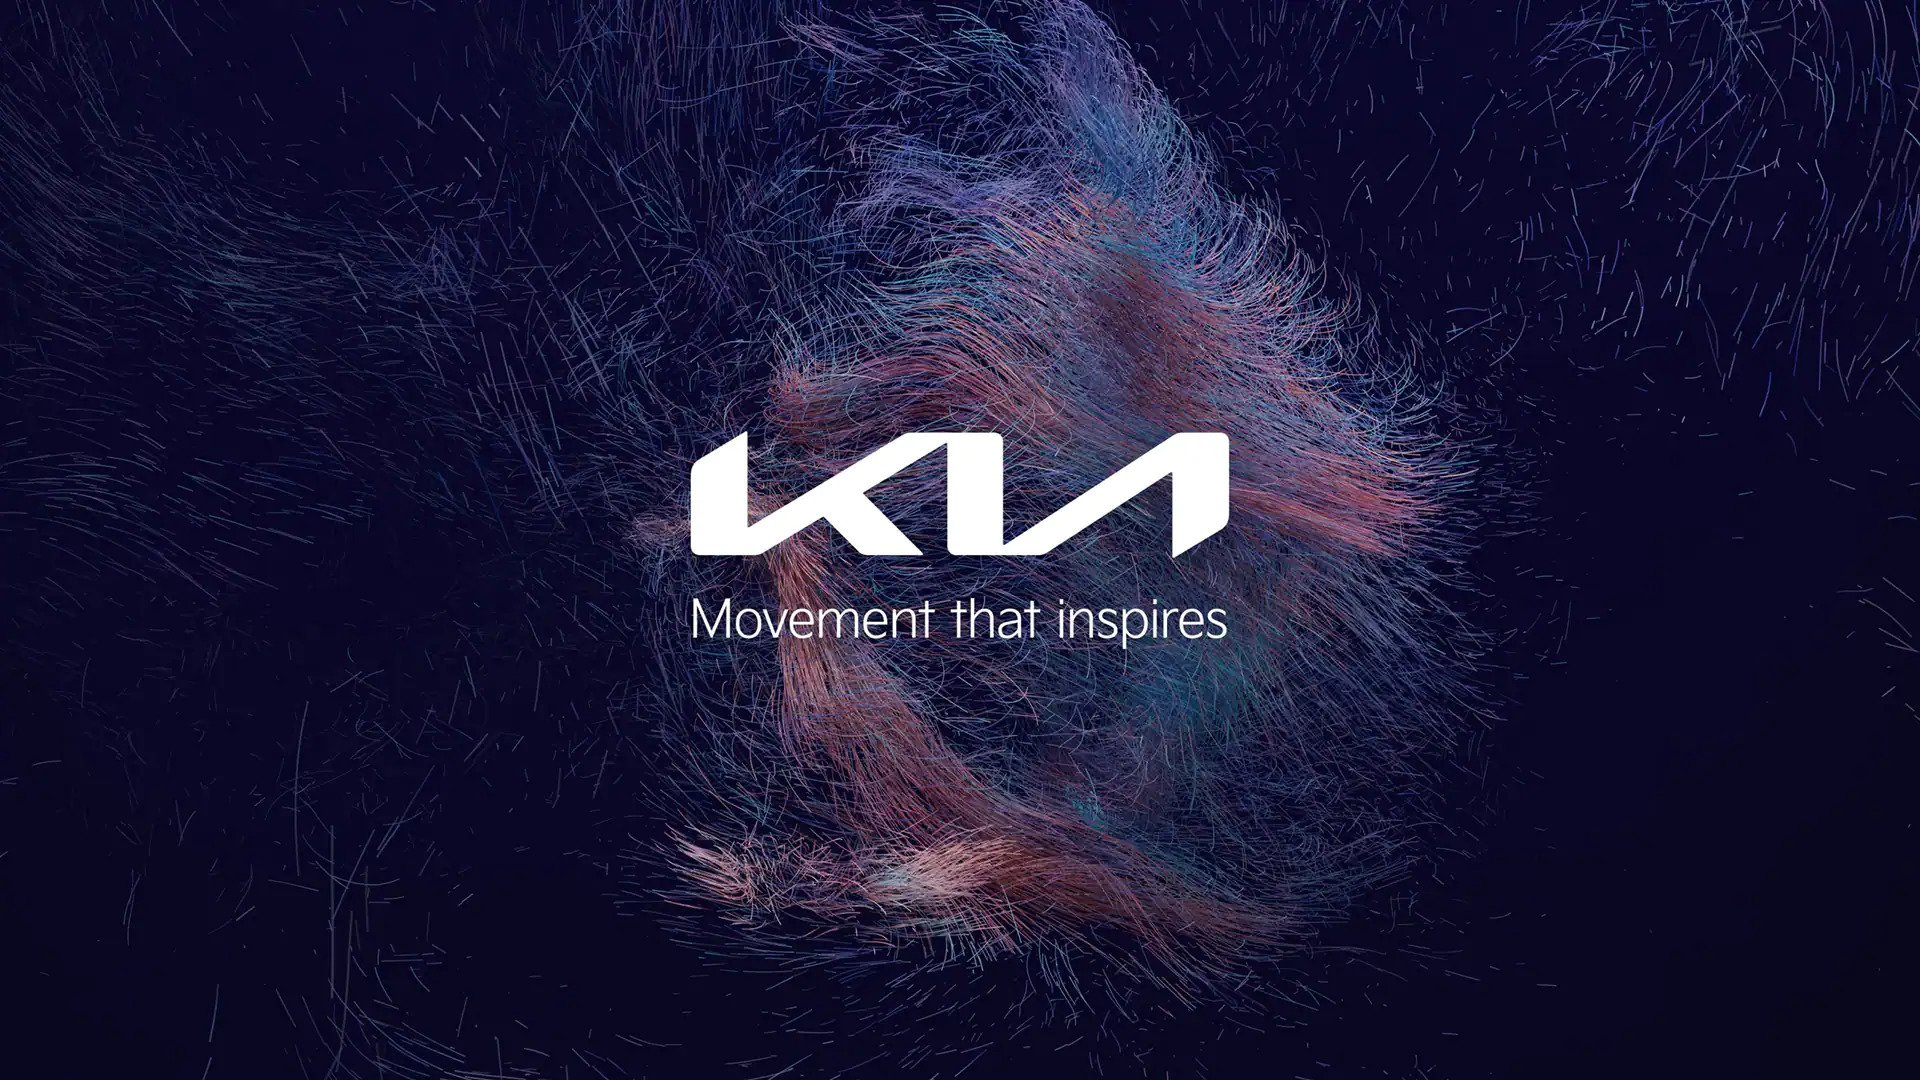 Kia movement that inspires slide with